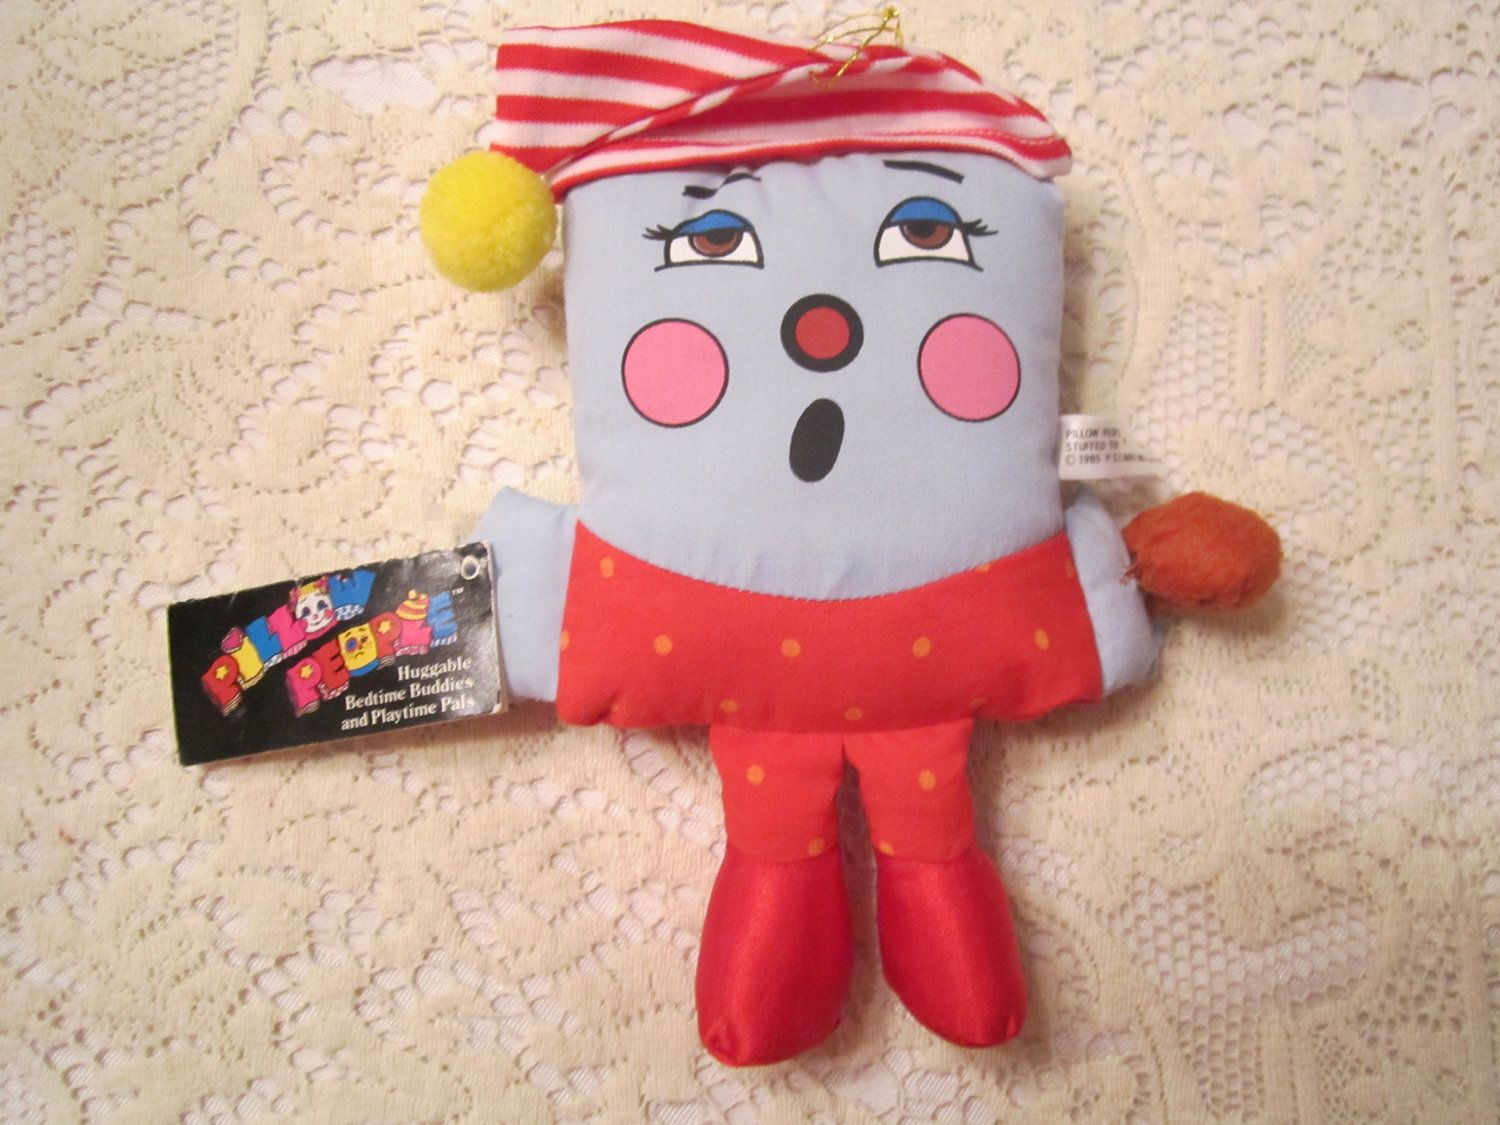 Glow Toys For Bedtime Vintage 1980 39s Pillow People Plush Toy Ornament Bedtime